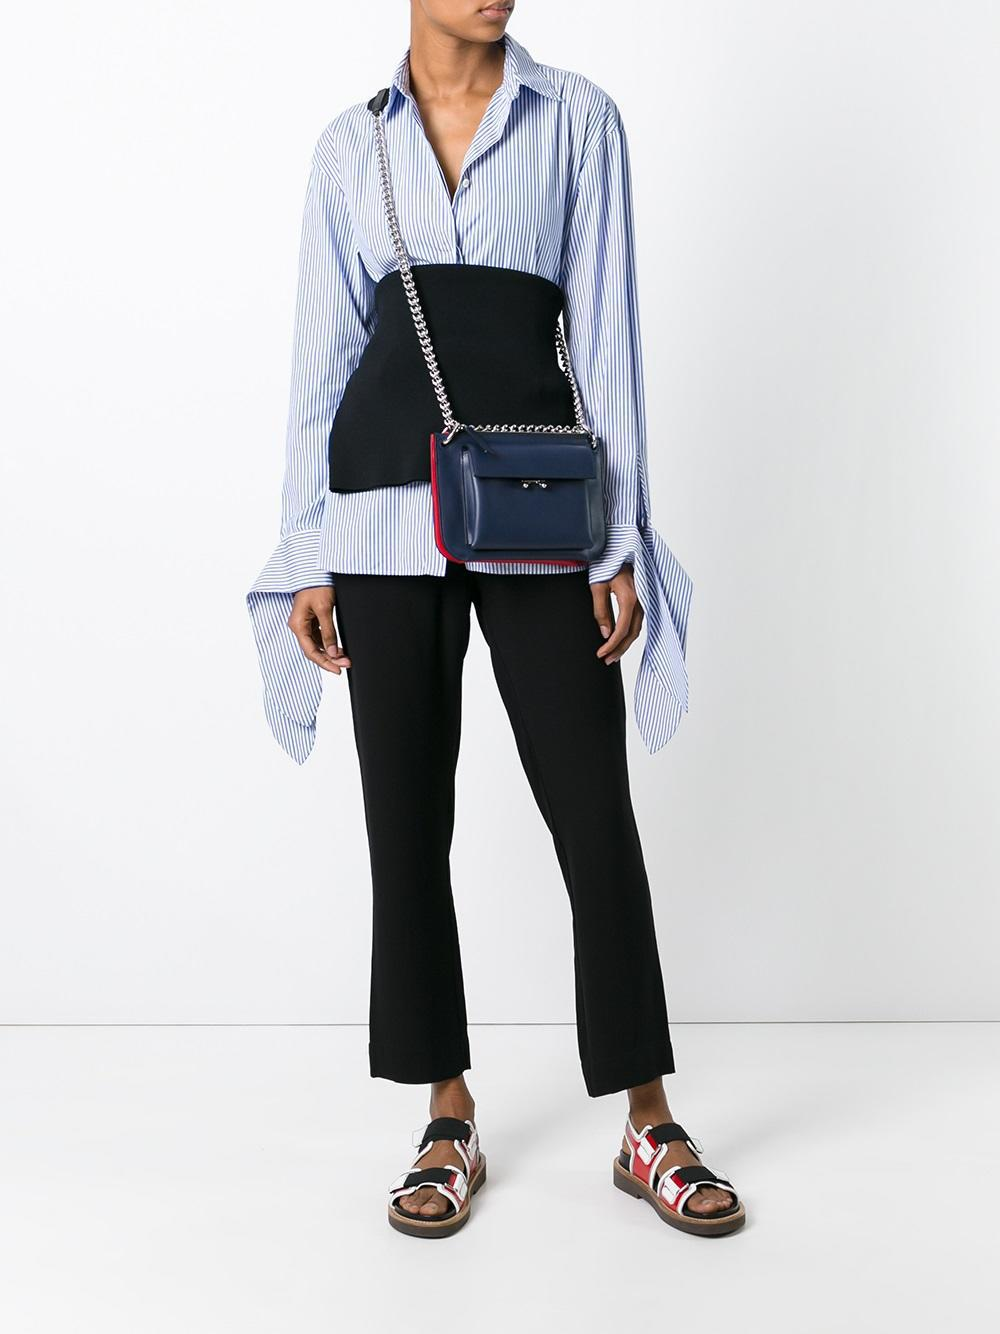 Marni Leather Two Tone Pocket Crossbody Bag in Blue